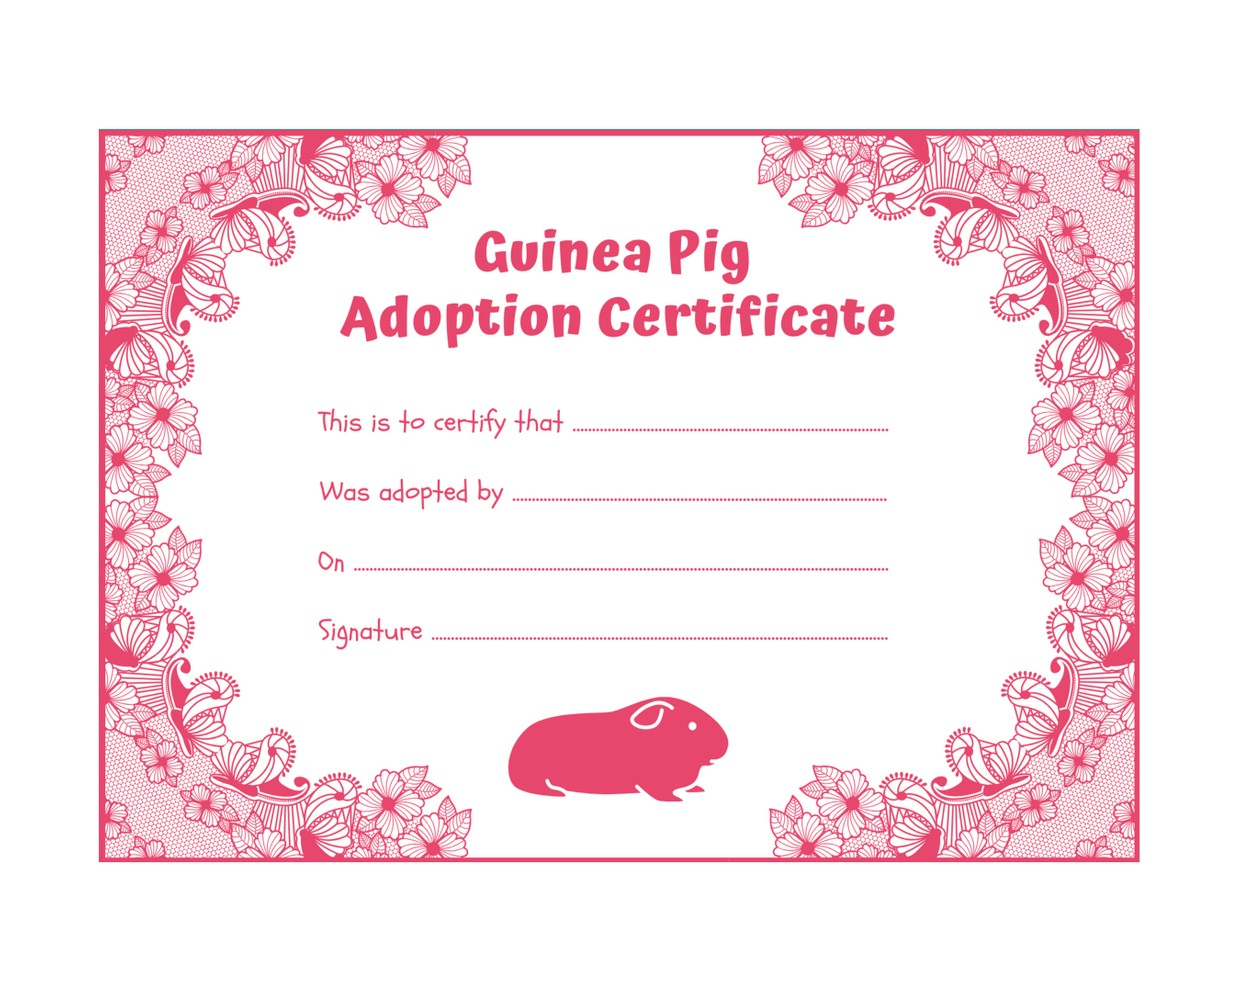 Guinea Pig Adoption Certificate - Pink - INSTANT DOWNLOAD